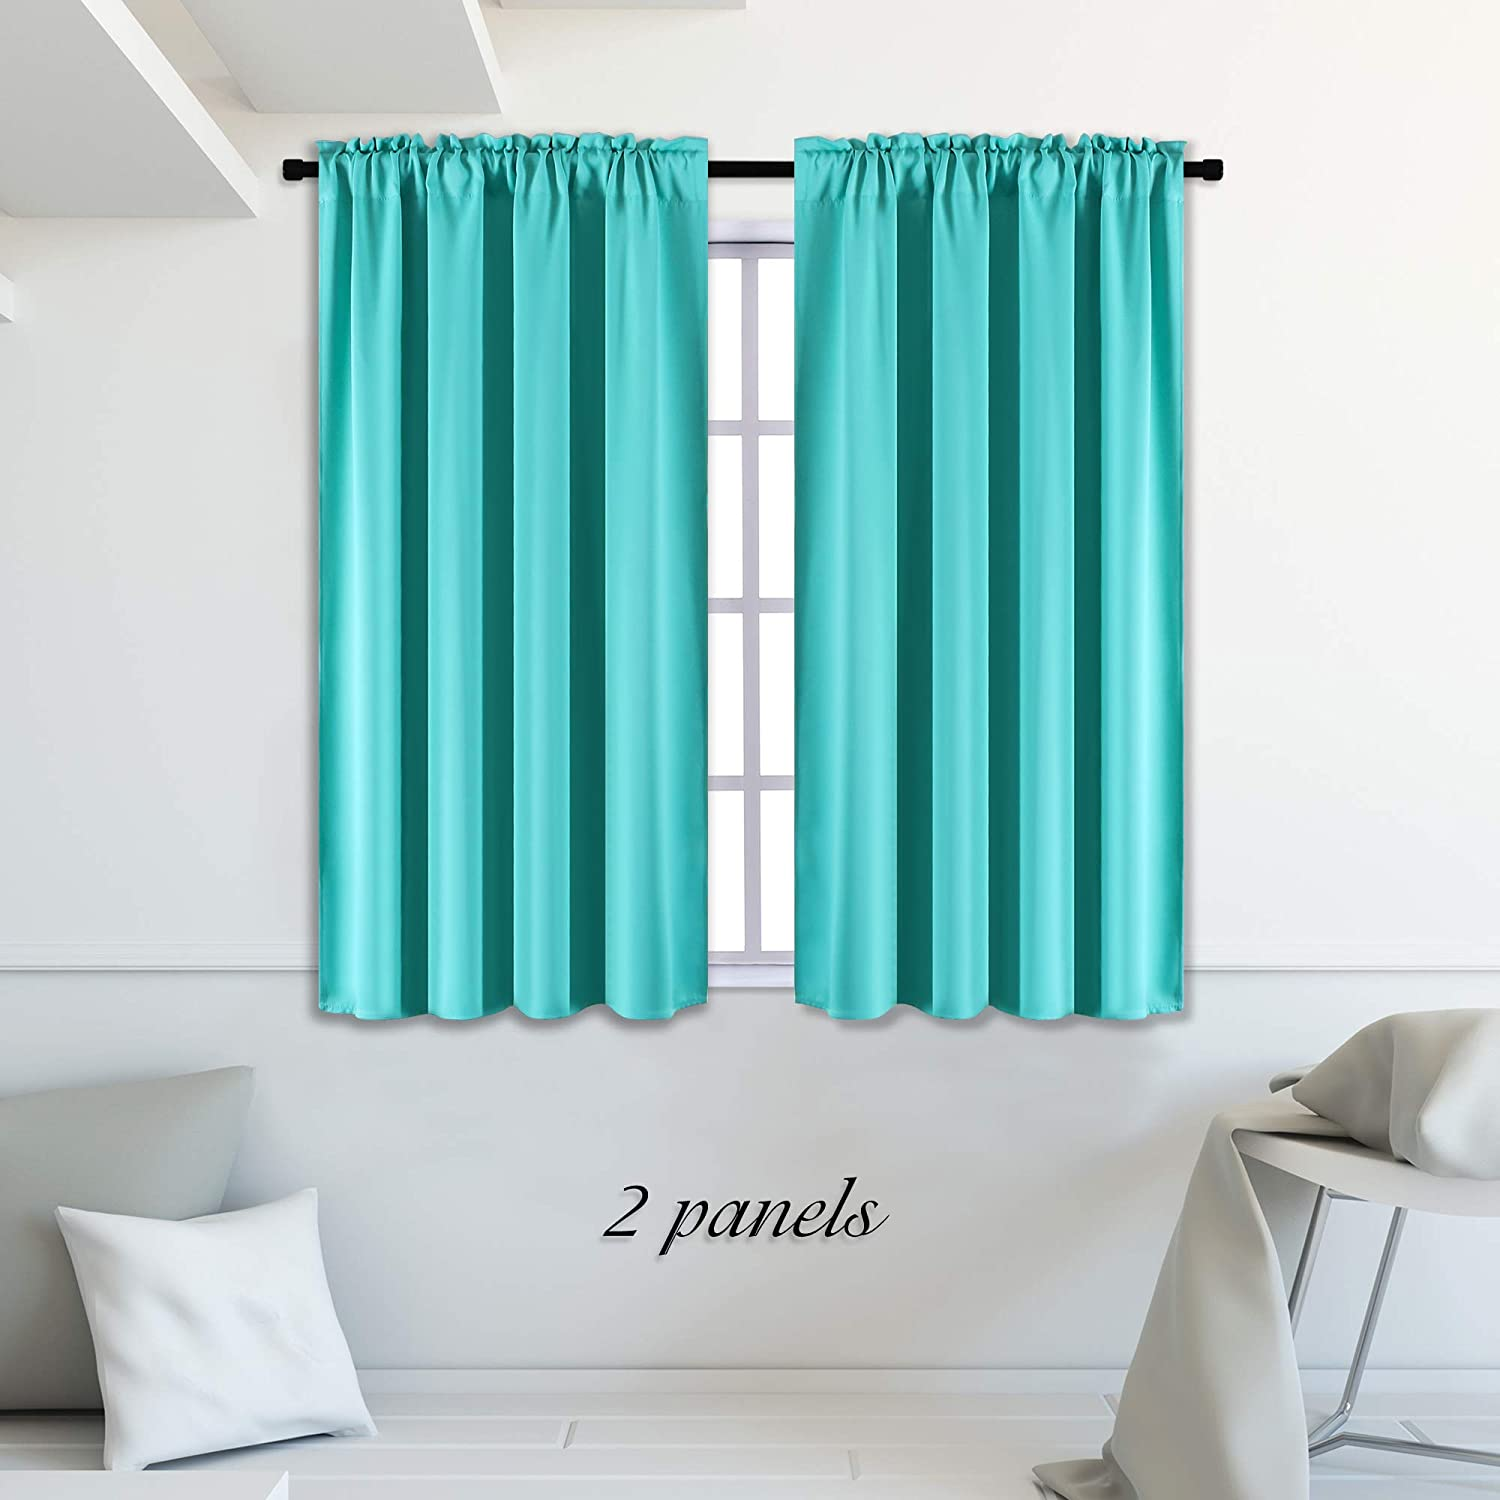 DONREN Turquoise Blackout Curtains - Room Darkening Thermal Insulated Living Room Window Curtain Panels Drapes (42 x 45 Inches Long,Set of 2)